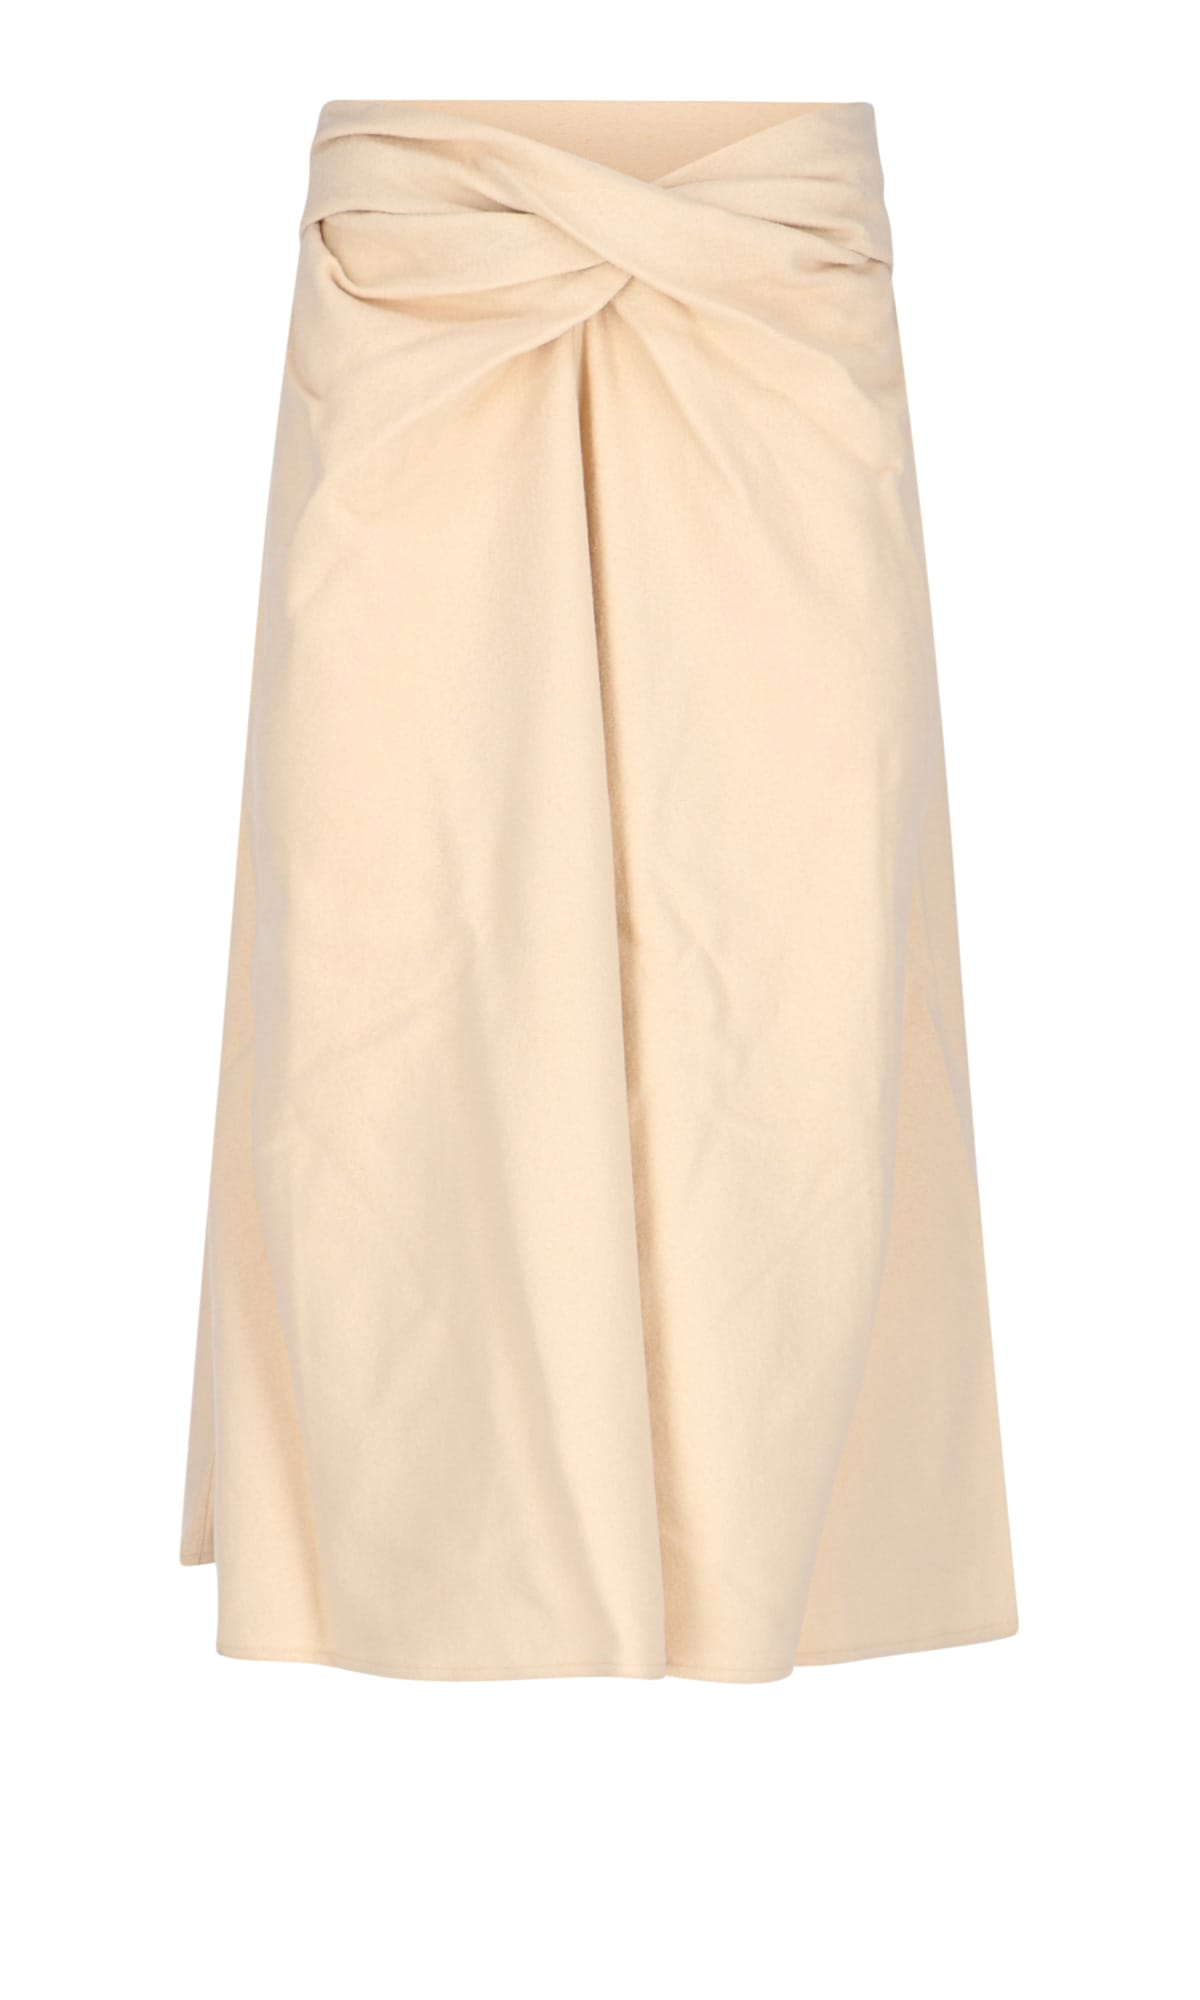 Lemaire Wools FRONT DRAPERY MIDI SKIRT